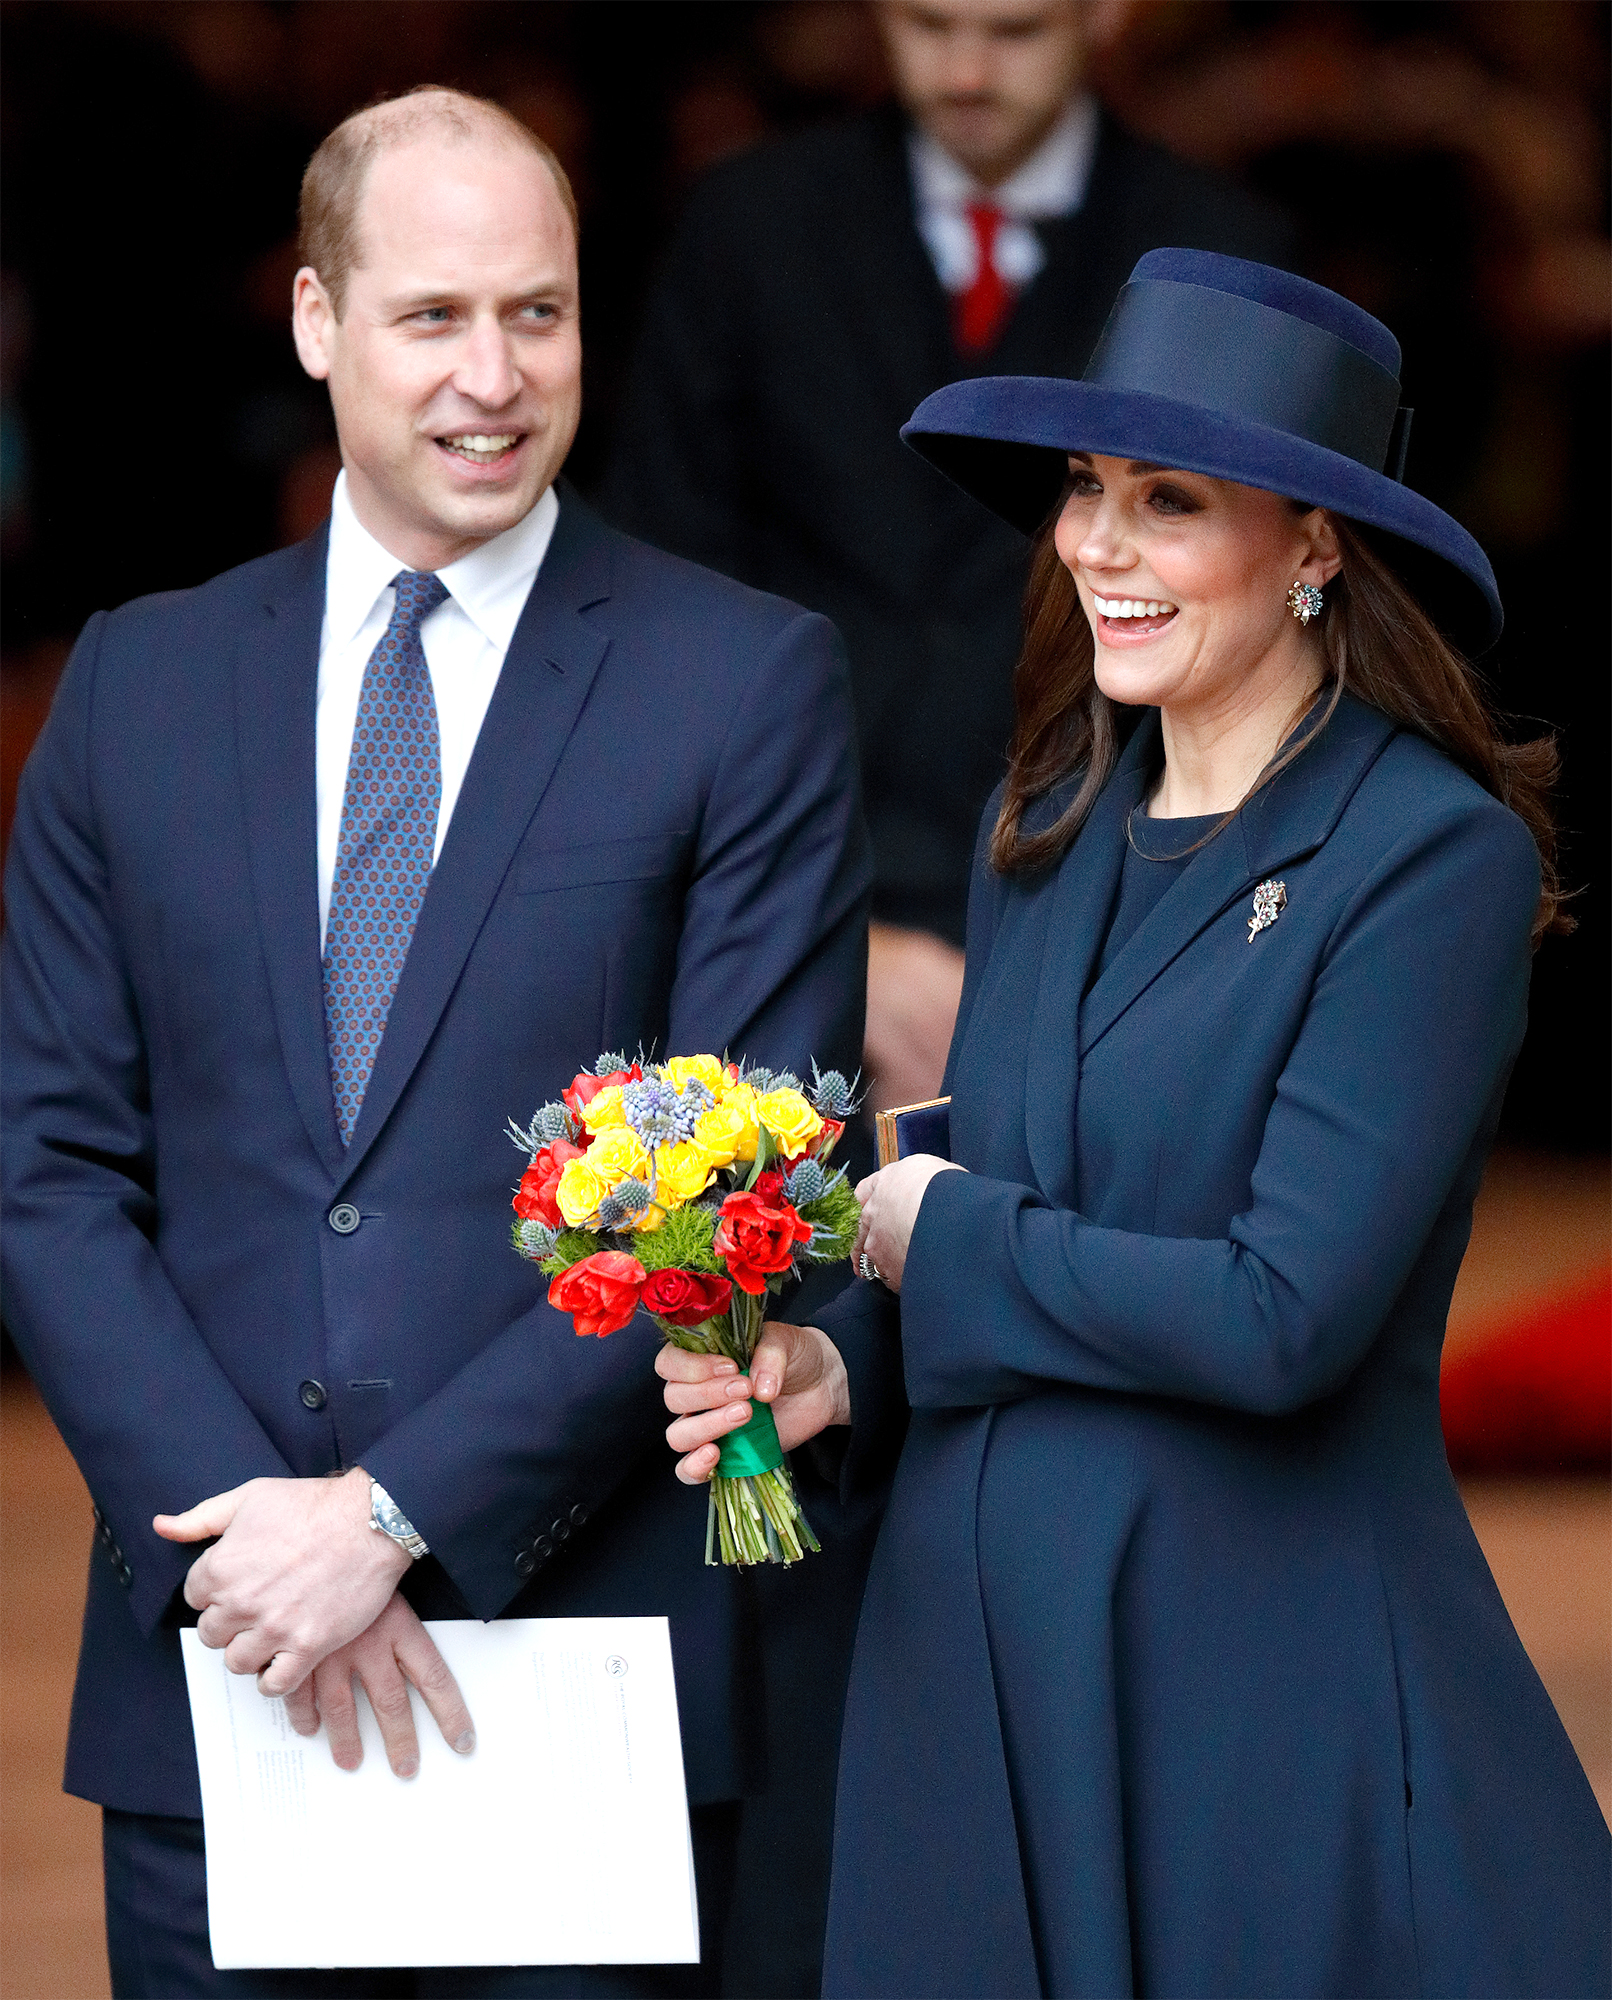 What Are Prince William and Kate Middleton Naming the Royal Baby? The Top Predictions Are in! kate-middleton1